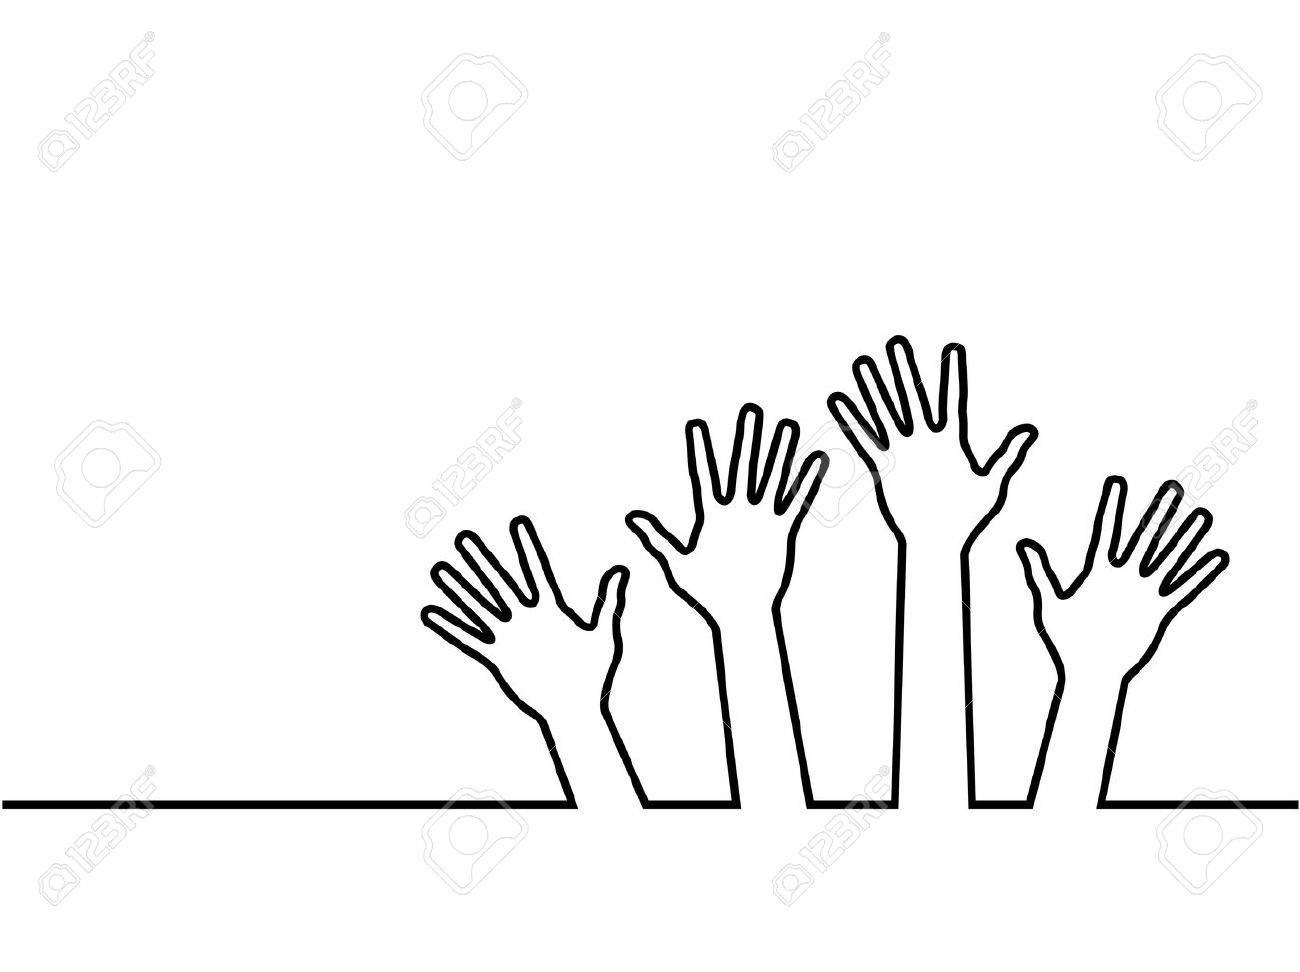 black line of hands, abstract vector illustration for design. Stock Vector - 12799235